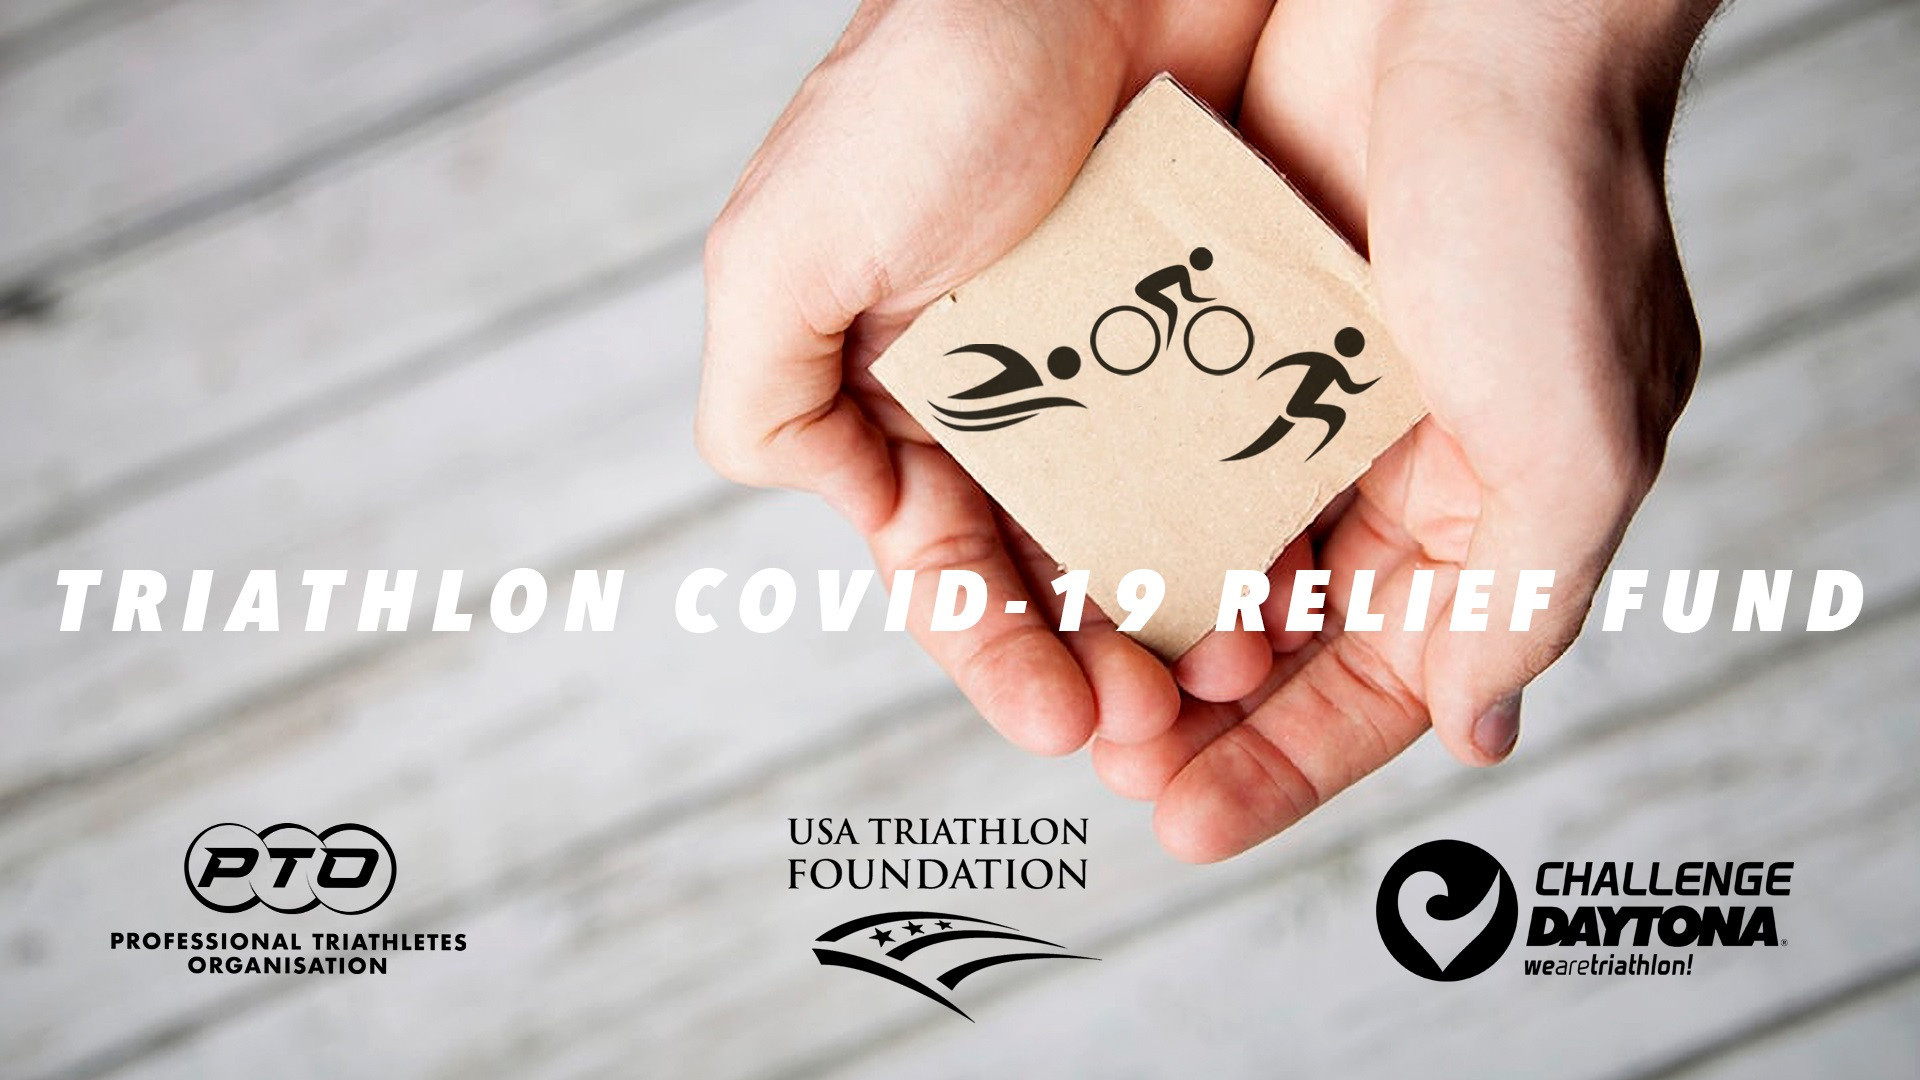 Triathlon COVID-19 relief fund launched ahead of PTO 2020 Championship